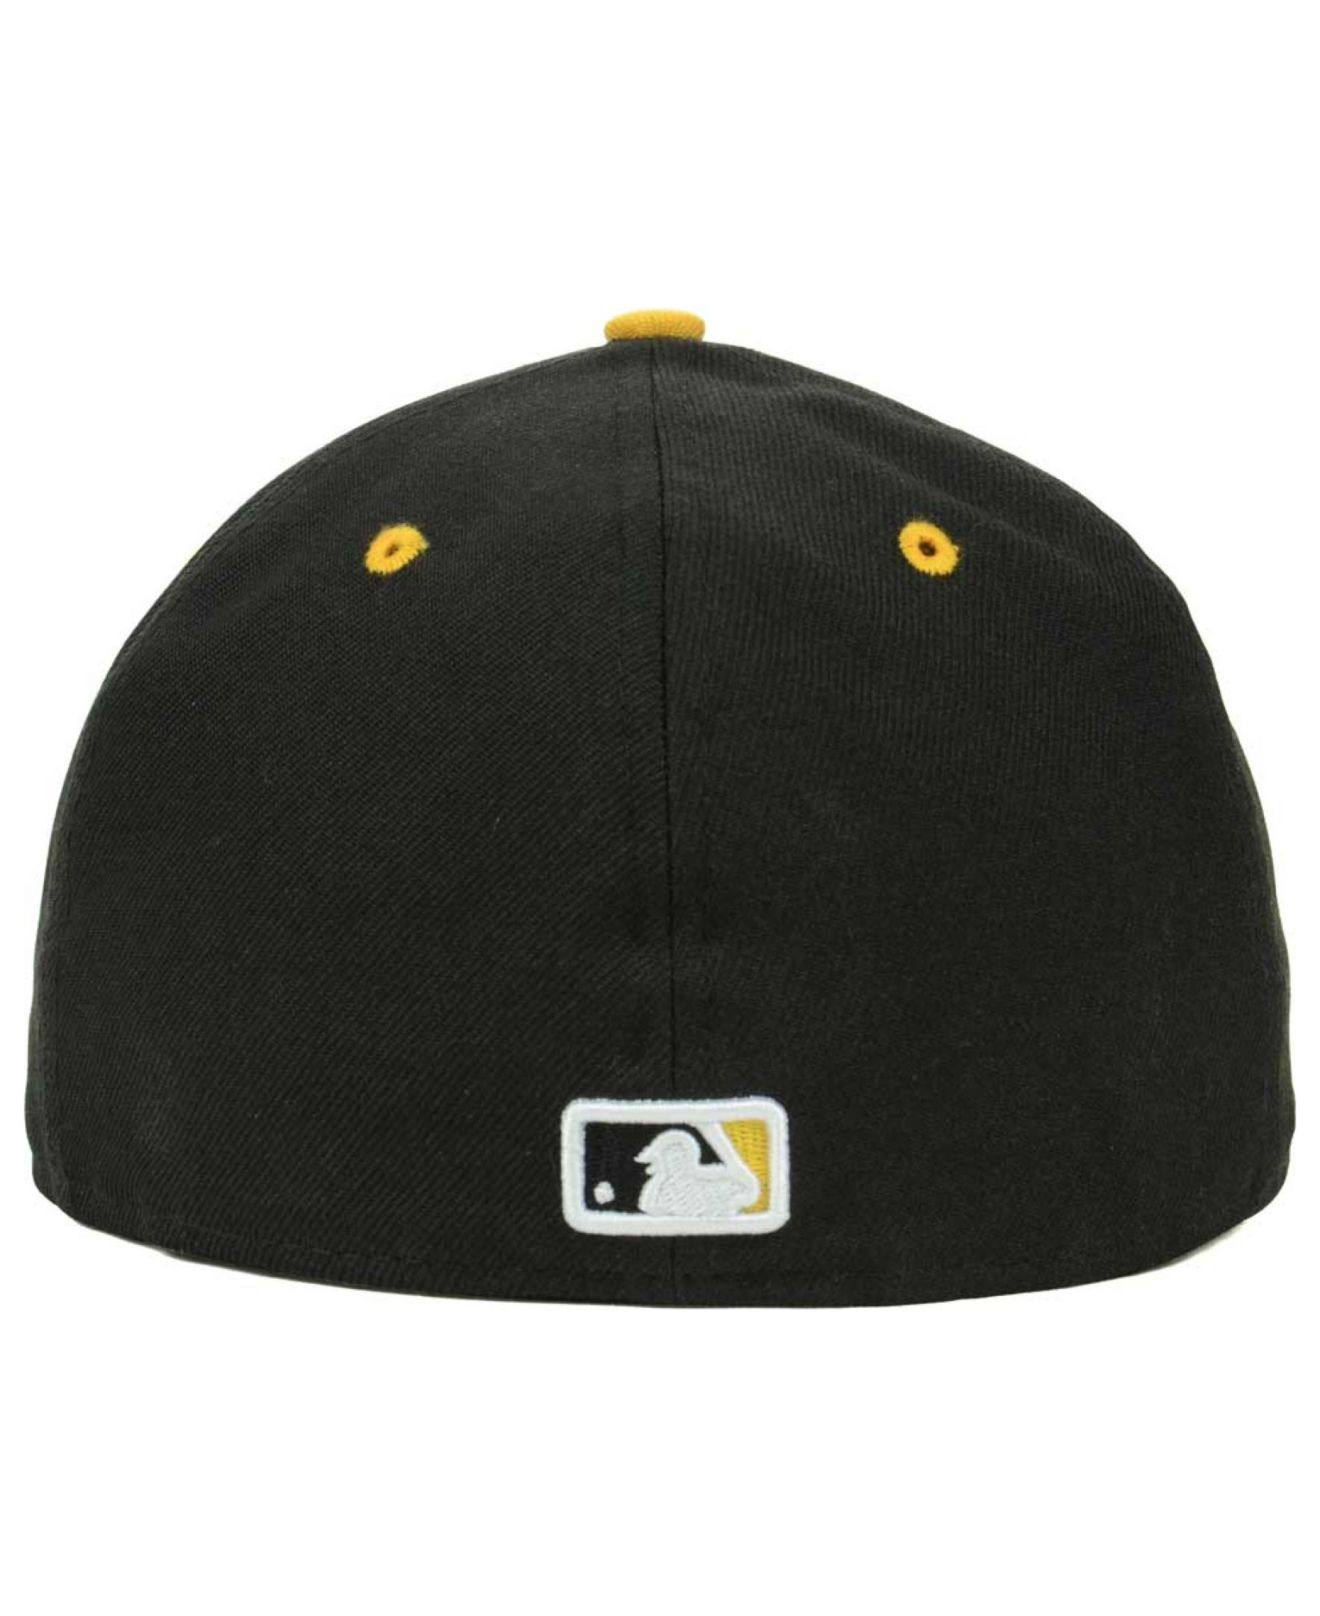 various colors fac6b 770ec ... inexpensive lyst ktz pittsburgh pirates hall a frame 59fifty cap in  black for men be27d f401f